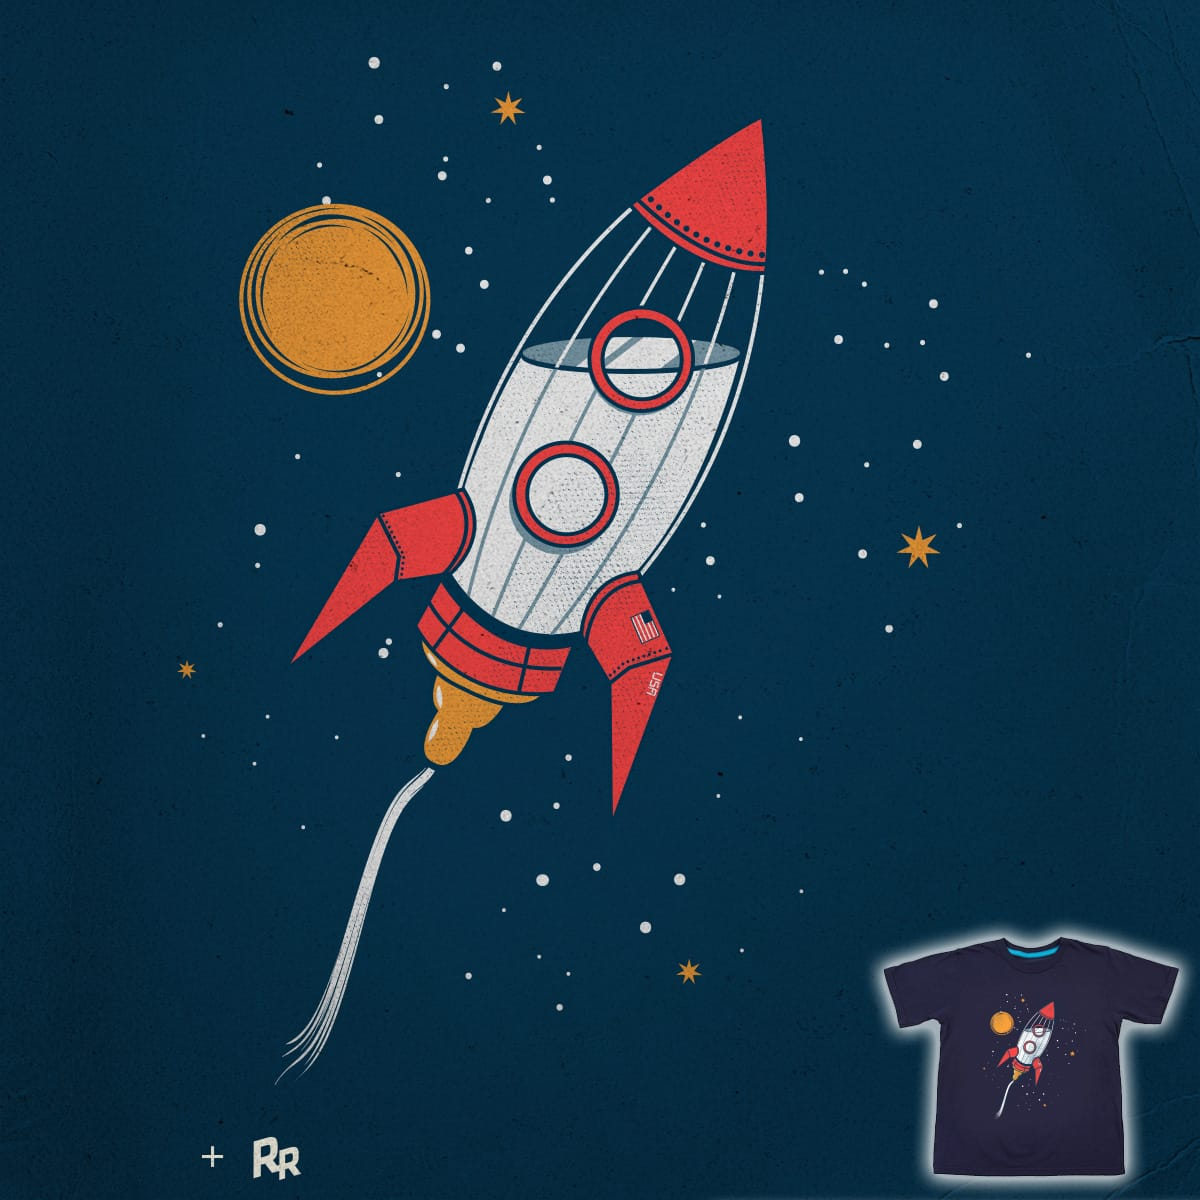 Bottle Rocket to the Milky Way by Ryder on Threadless